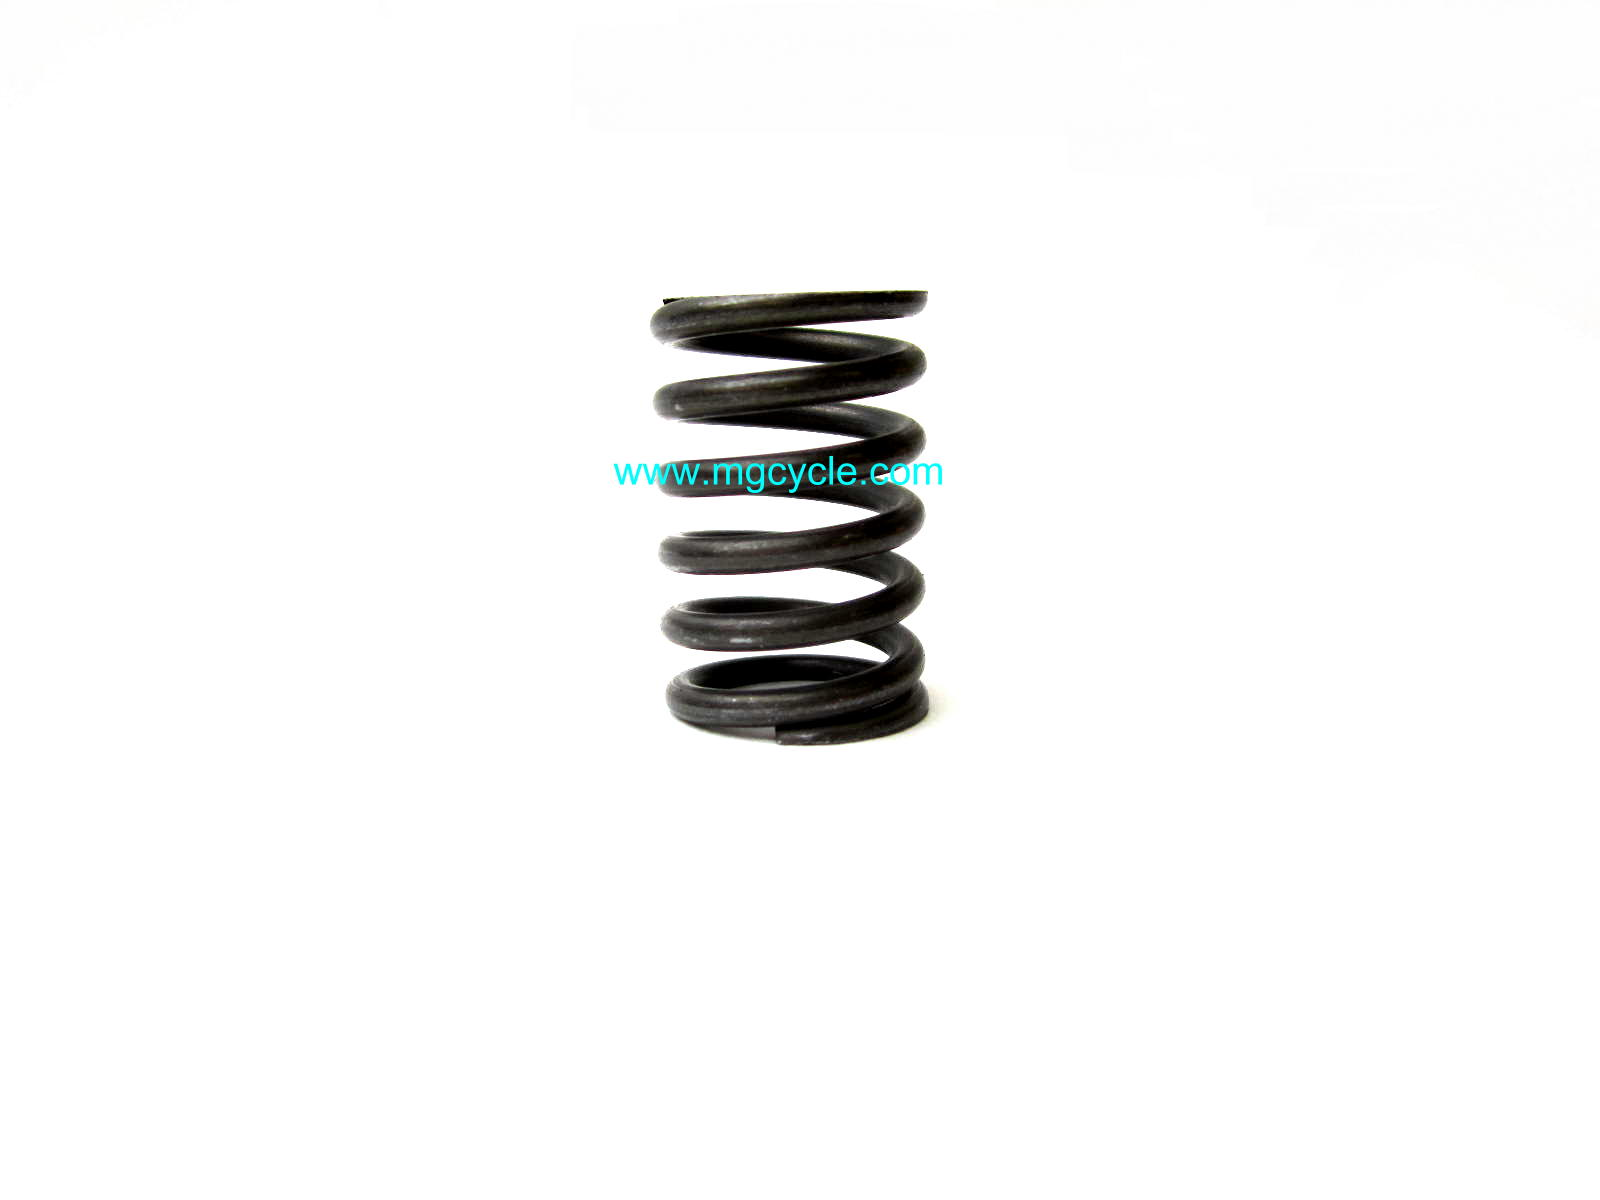 soft clutch spring for late model 10 spring clutches